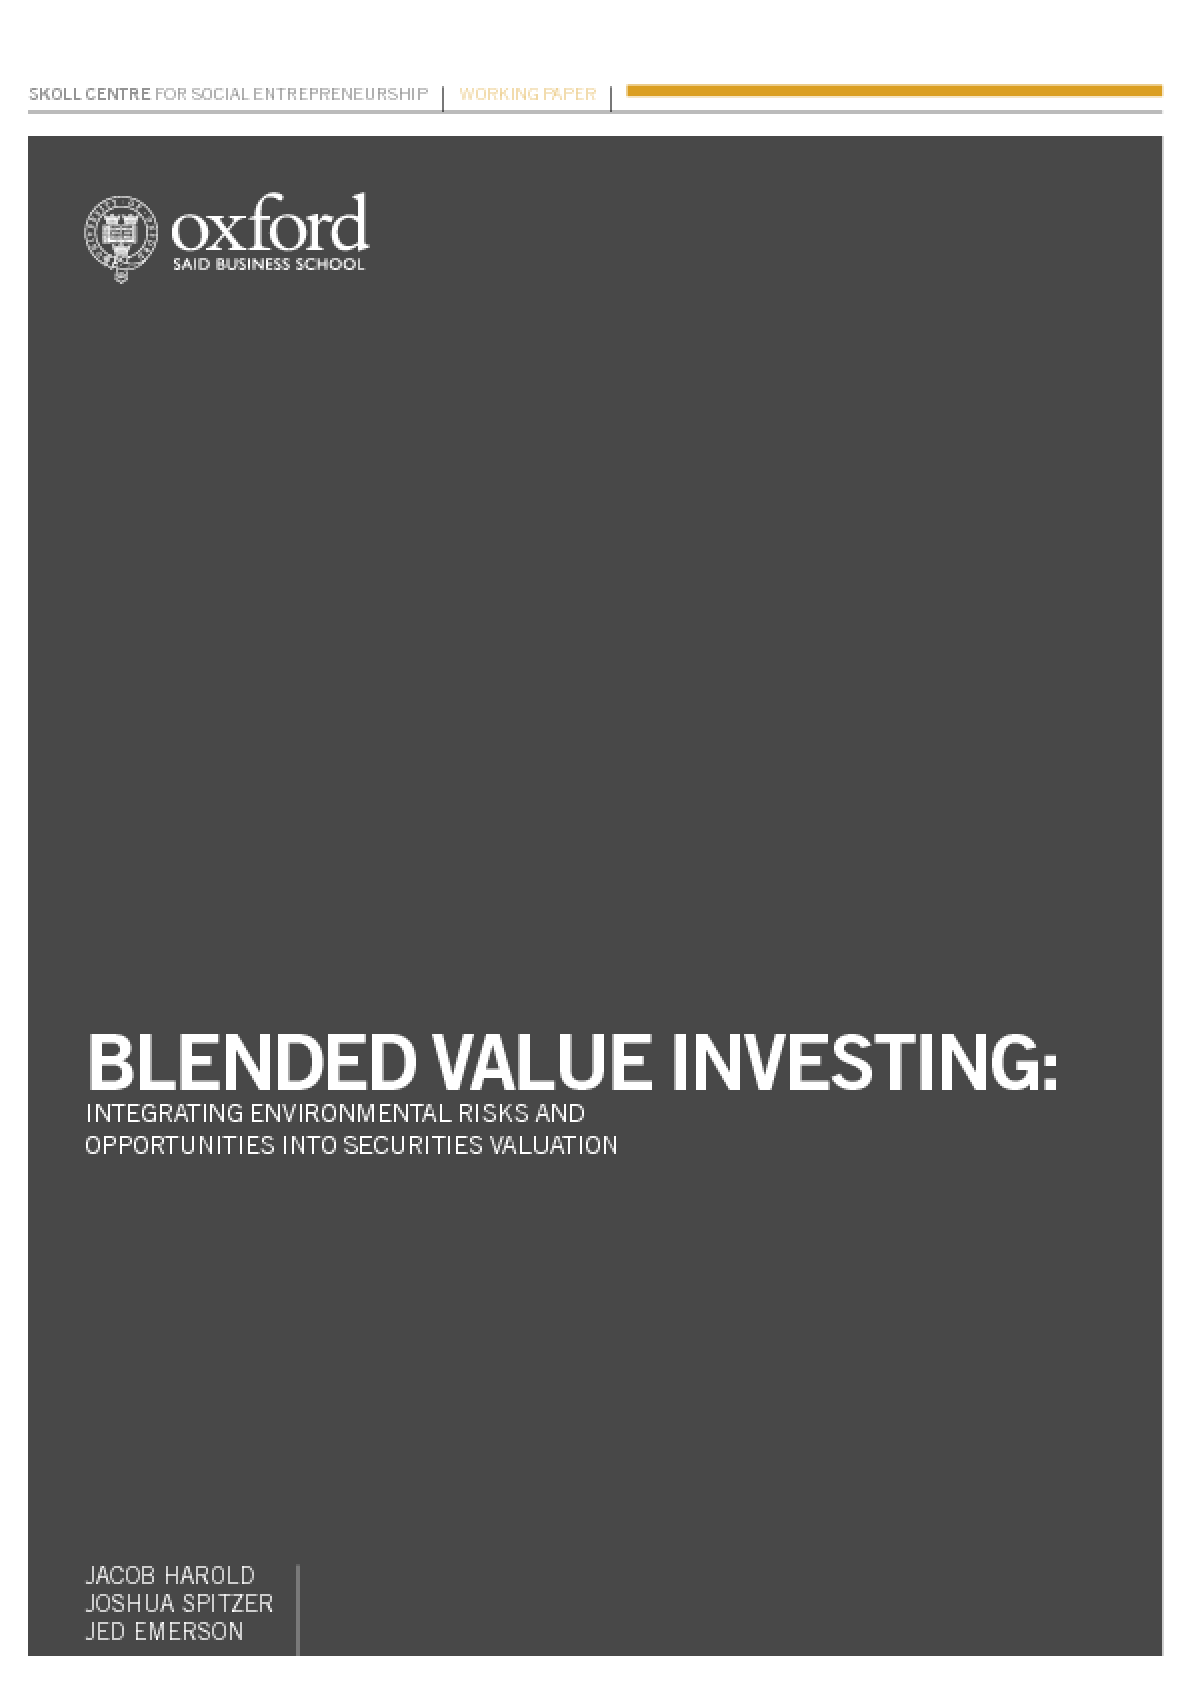 Blended Value Investing: Integrating Environmental Risk and Opportunities into Securities Valuation